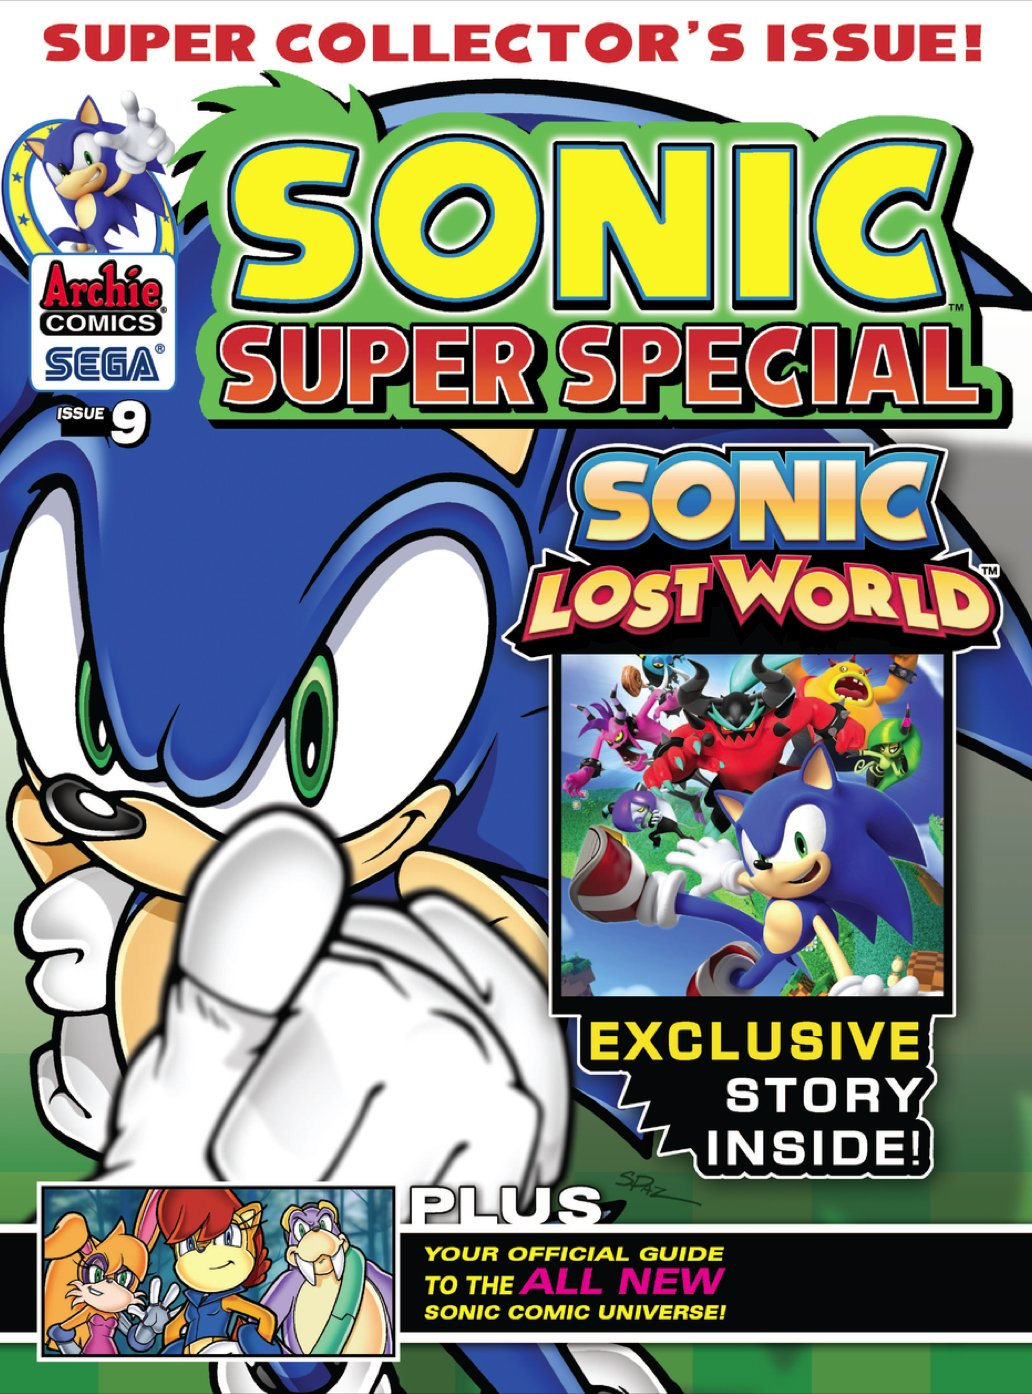 Sonic Super Special Magazine 09 (January 2014)